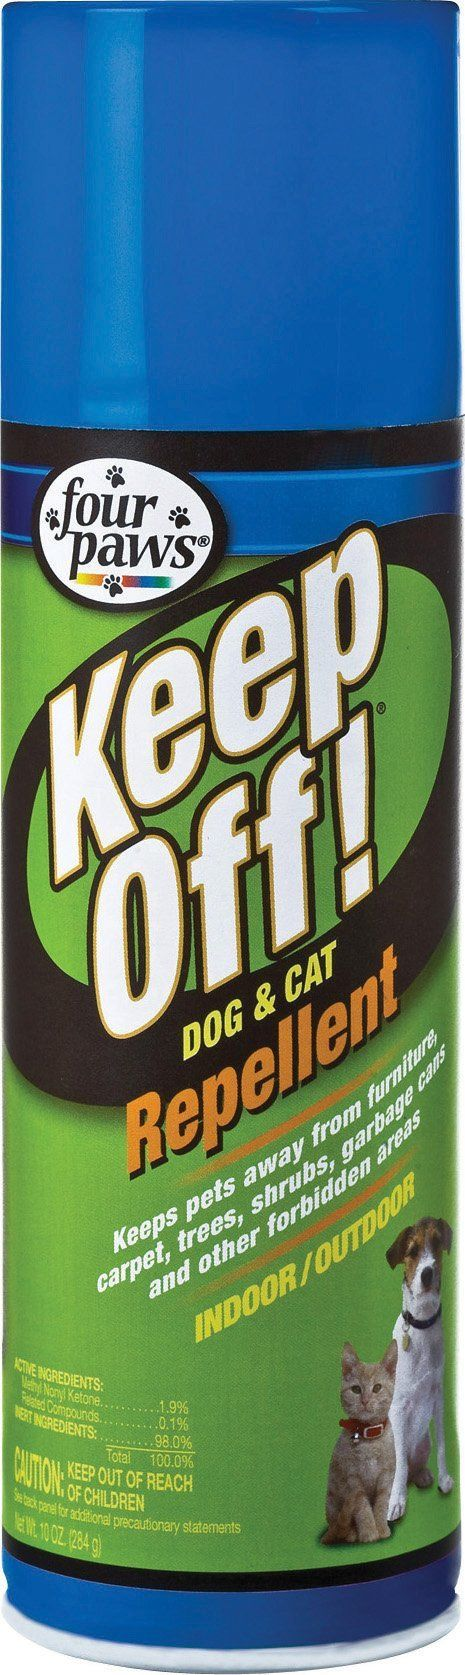 Four Paws Products Ltd - Keep Off Indoor/outdoor Repellent